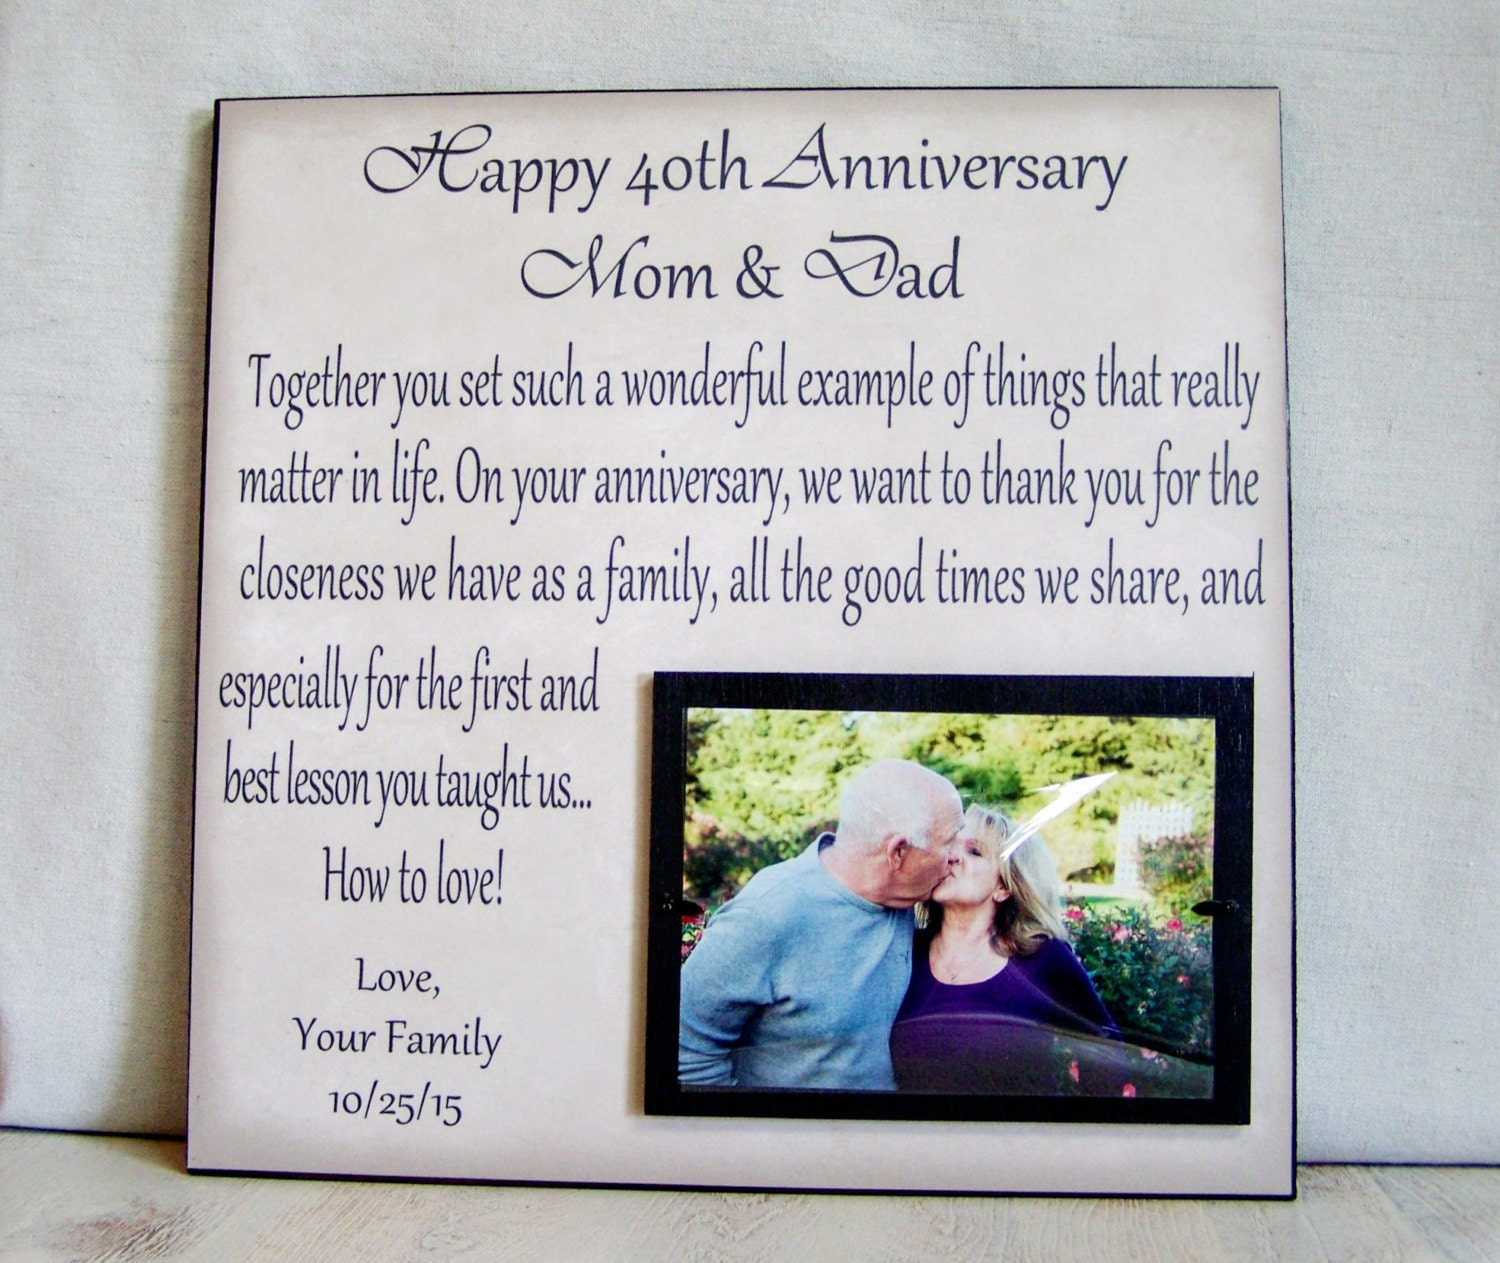 Wedding Anniversary Gift For Parents Online : Ideas 30th Wedding Anniversary Gift For Parents anniversary picture ...